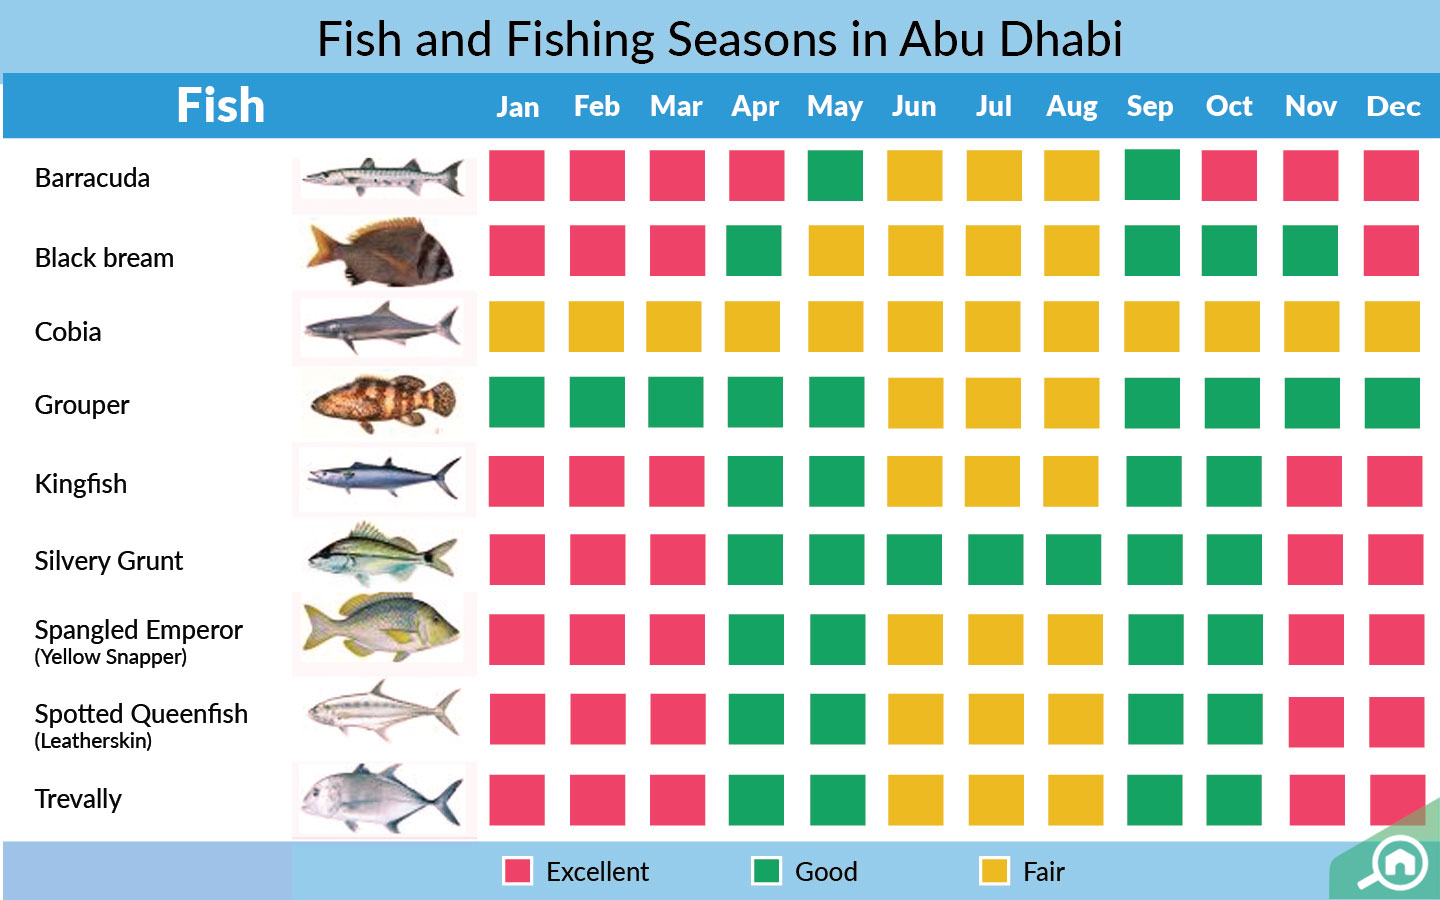 A pictorial representation of fish you can catch in a particular fishing season in Abu Dhabi